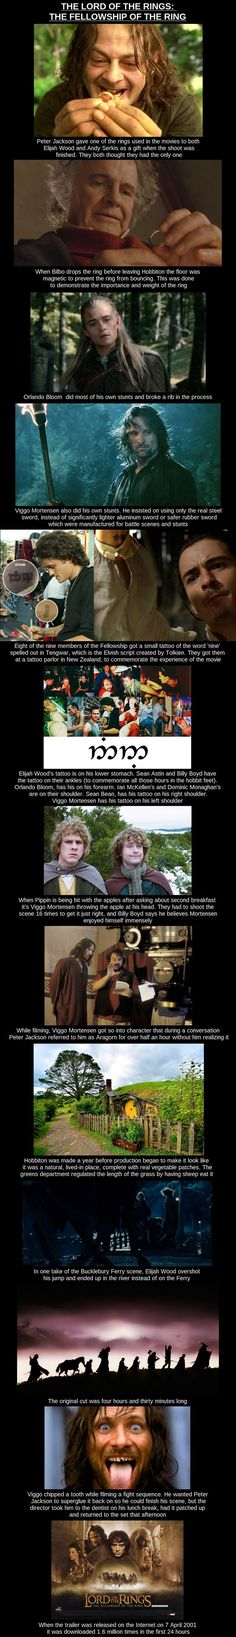 """The Fellowship of the Ring Film Facts. In fairness to Billy Boyd, Viggo did kiss him so thoroughly that he """"saw stars"""" later, lol."""